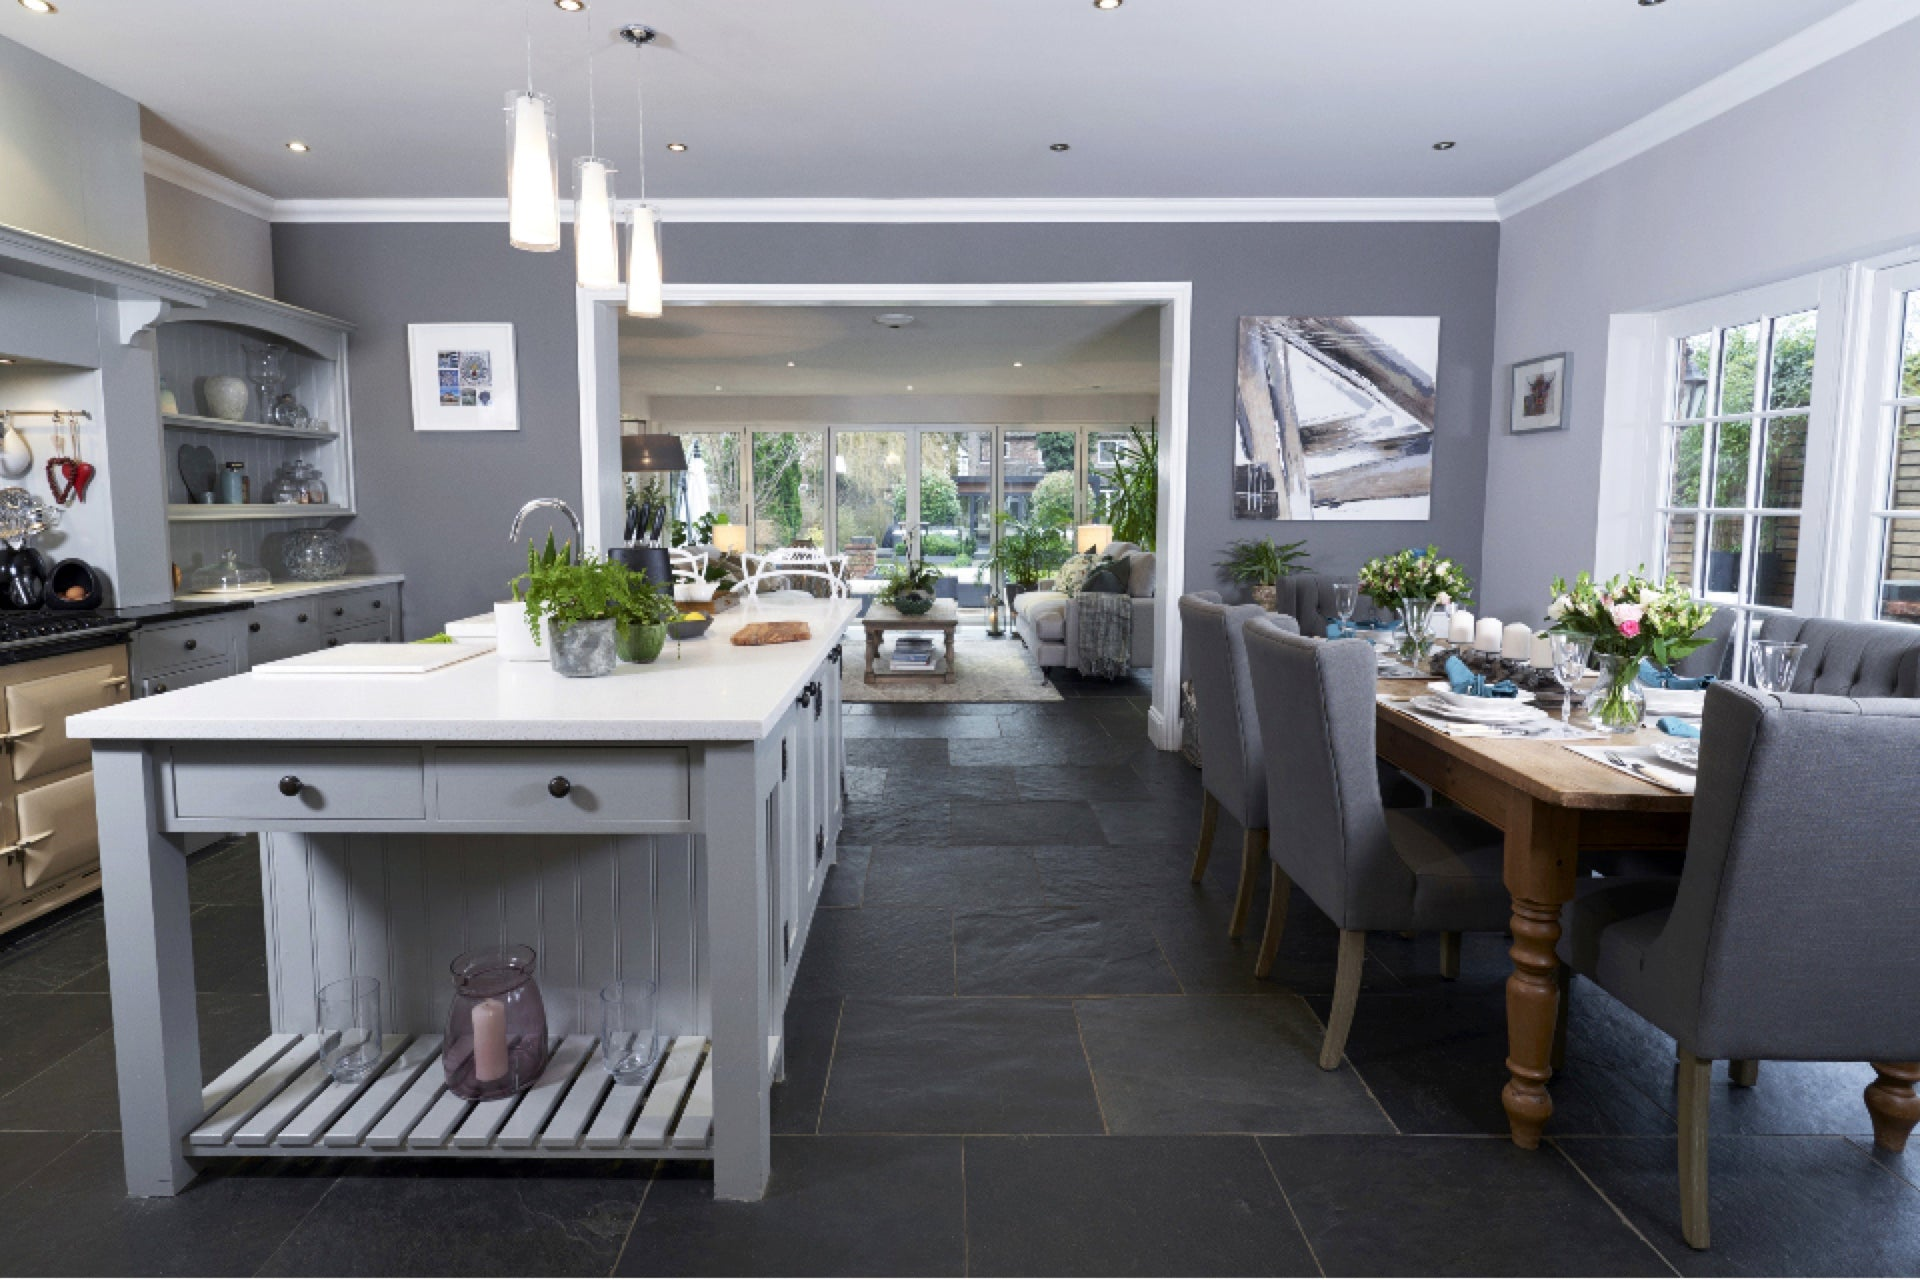 Open Plan Kitchen Garden Room